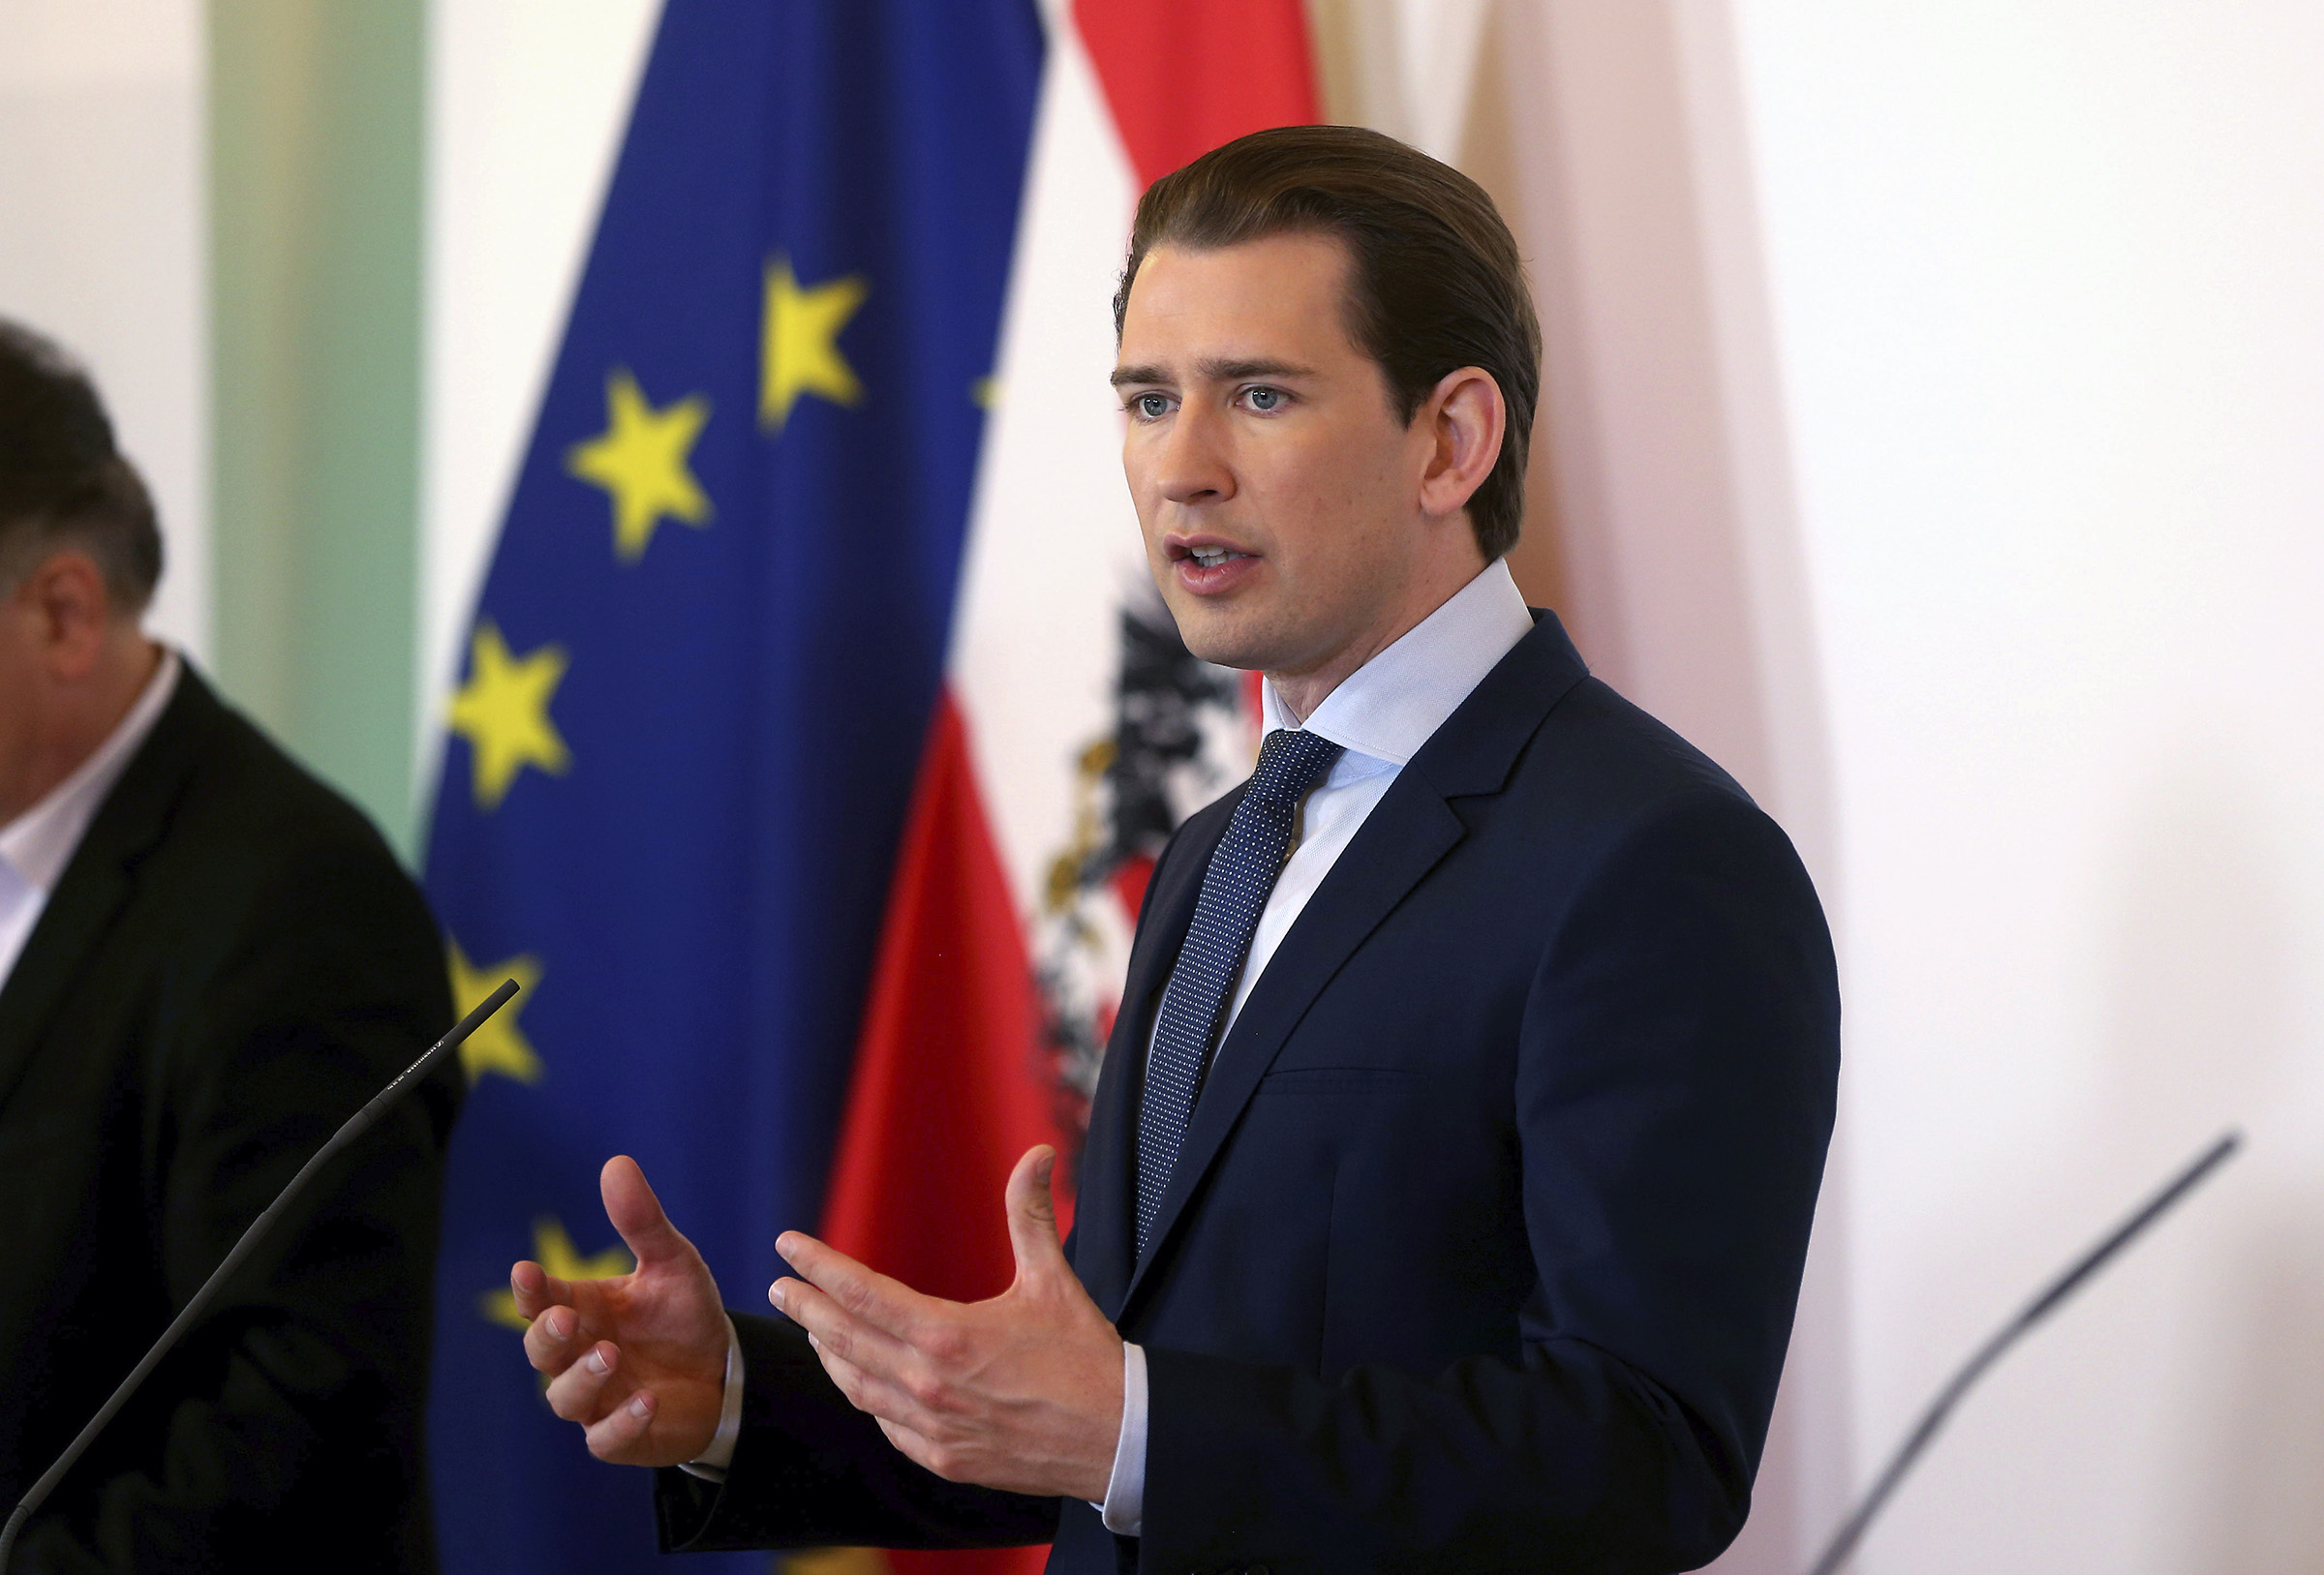 Austrian Chancellor Sebastian Kurz speaks during a press conference at the federal chancellery in Vienna, Austria, on June 16, 2020.